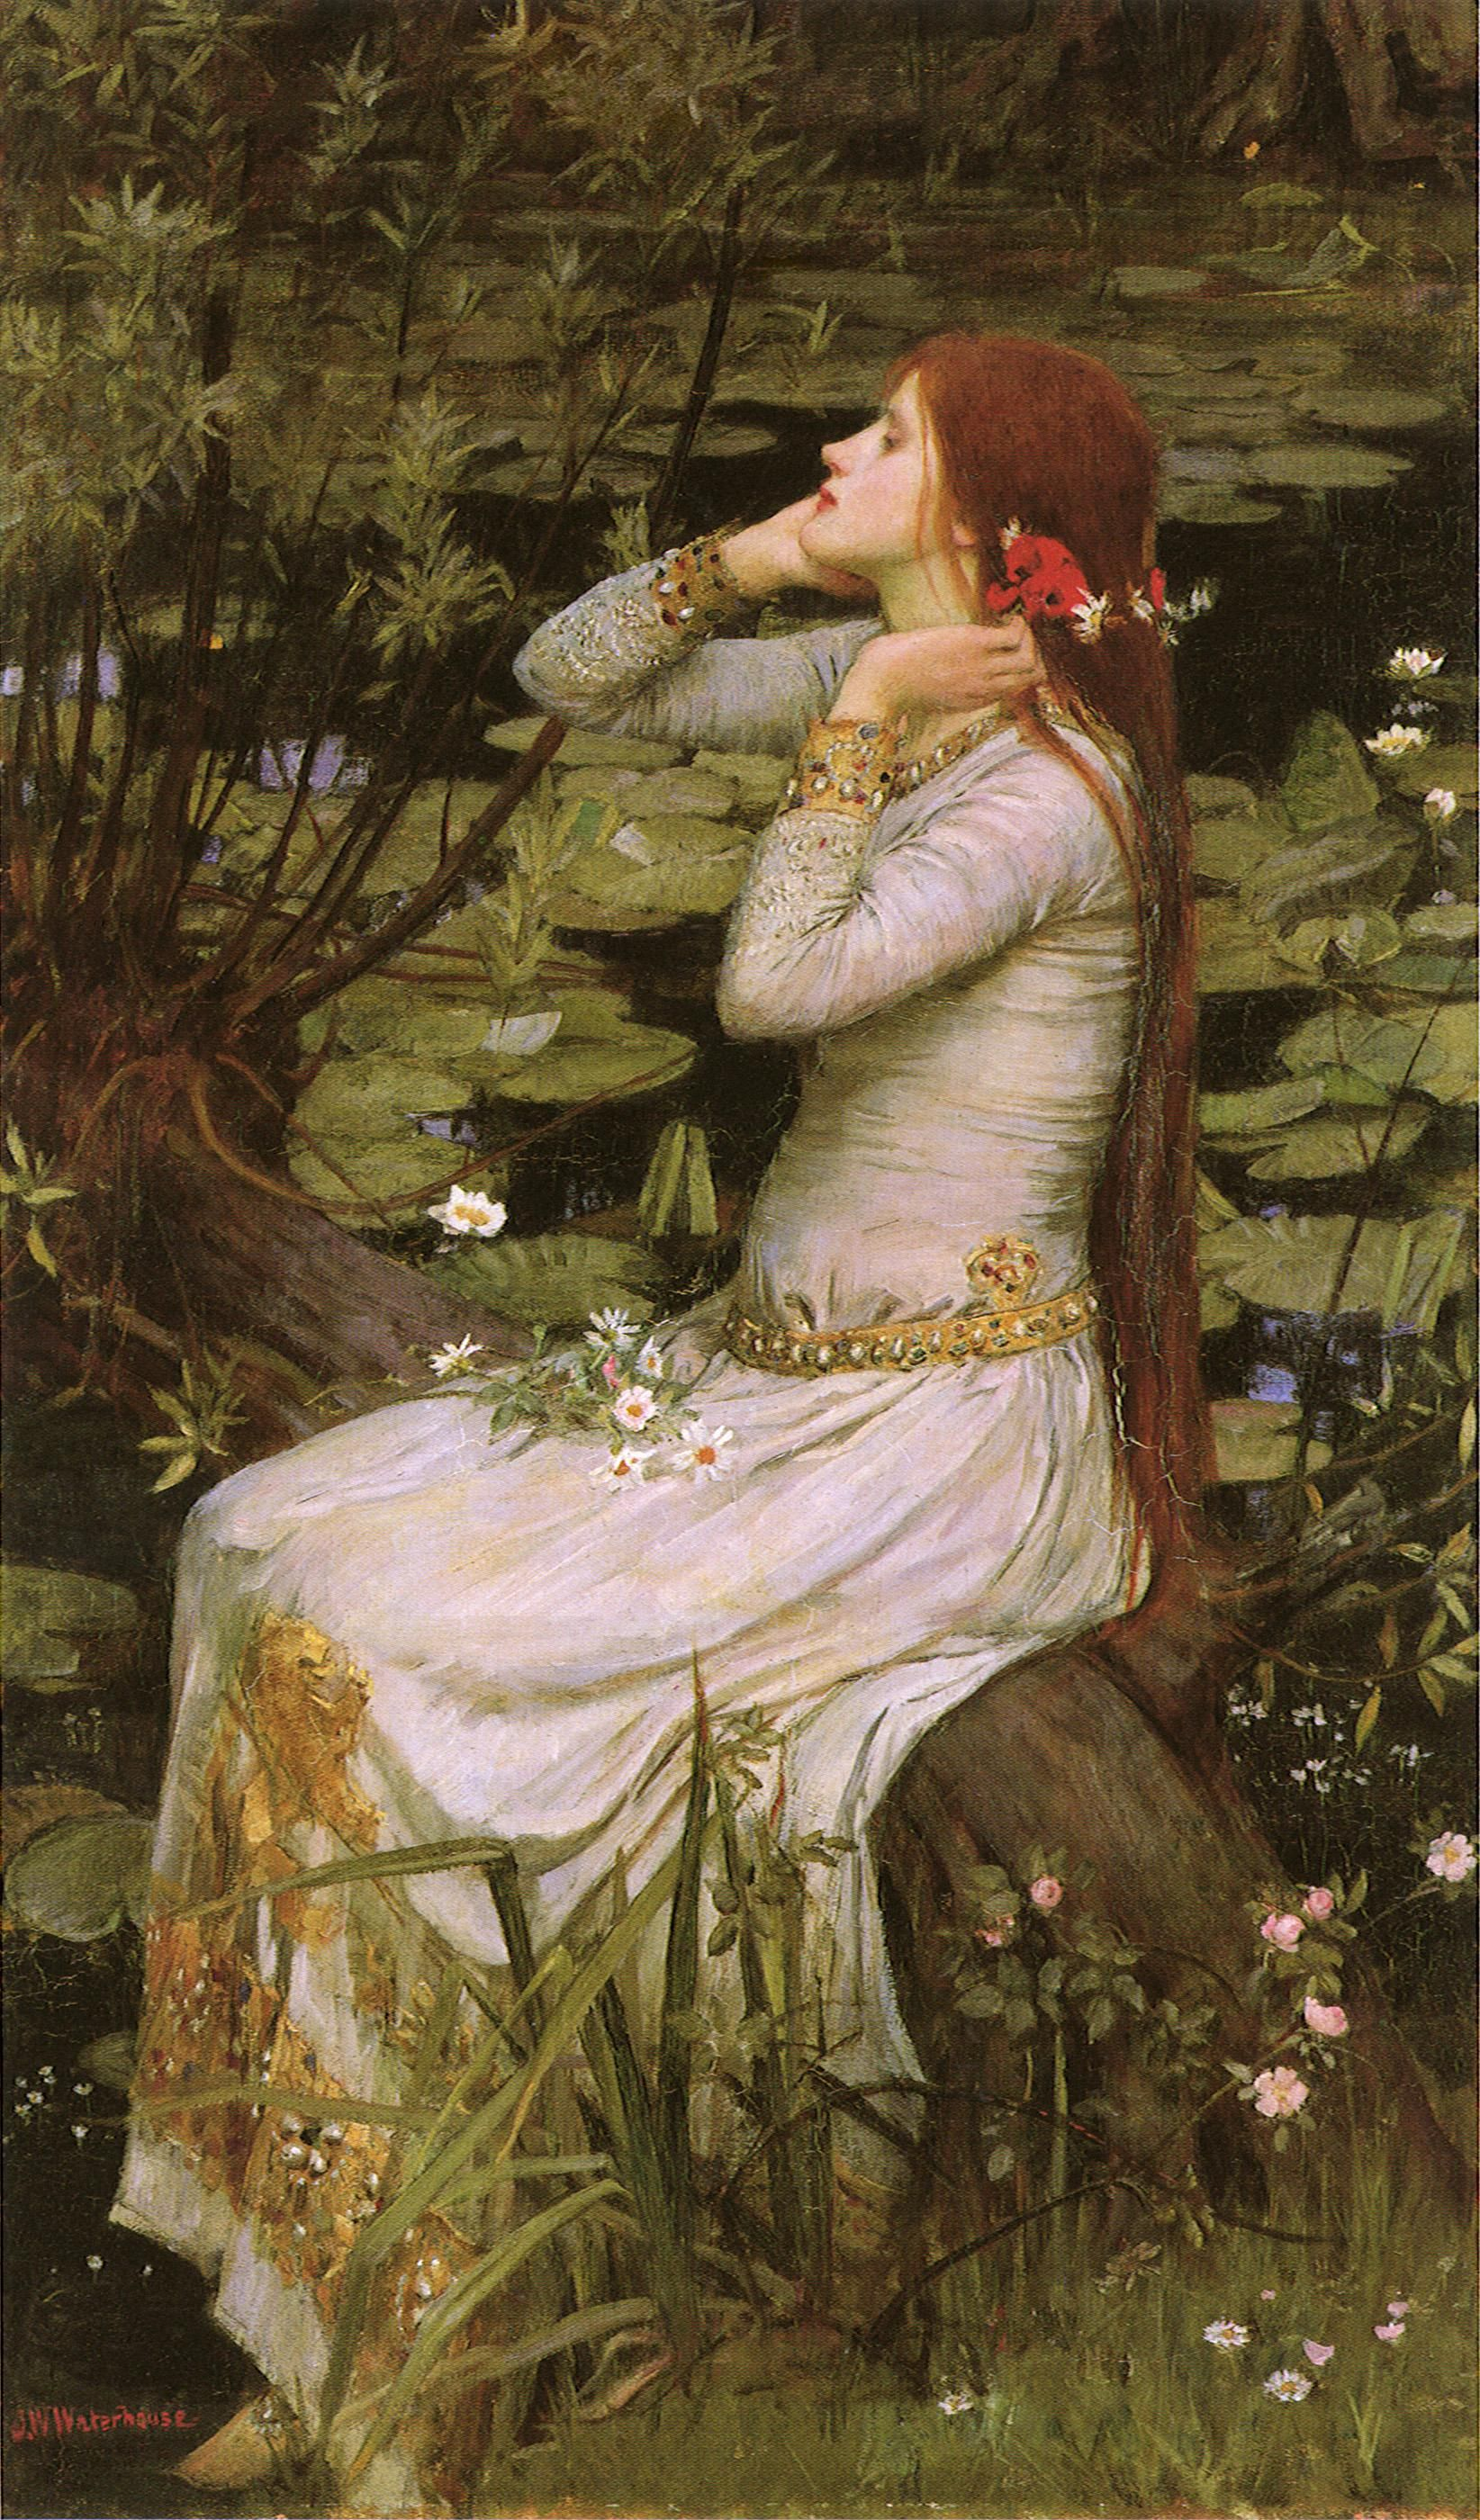 """Ophelia"" by John William Waterhouse, 1894. Many portrayals of Hamlet's tragic character show her interacting with flowers, all meaningful."